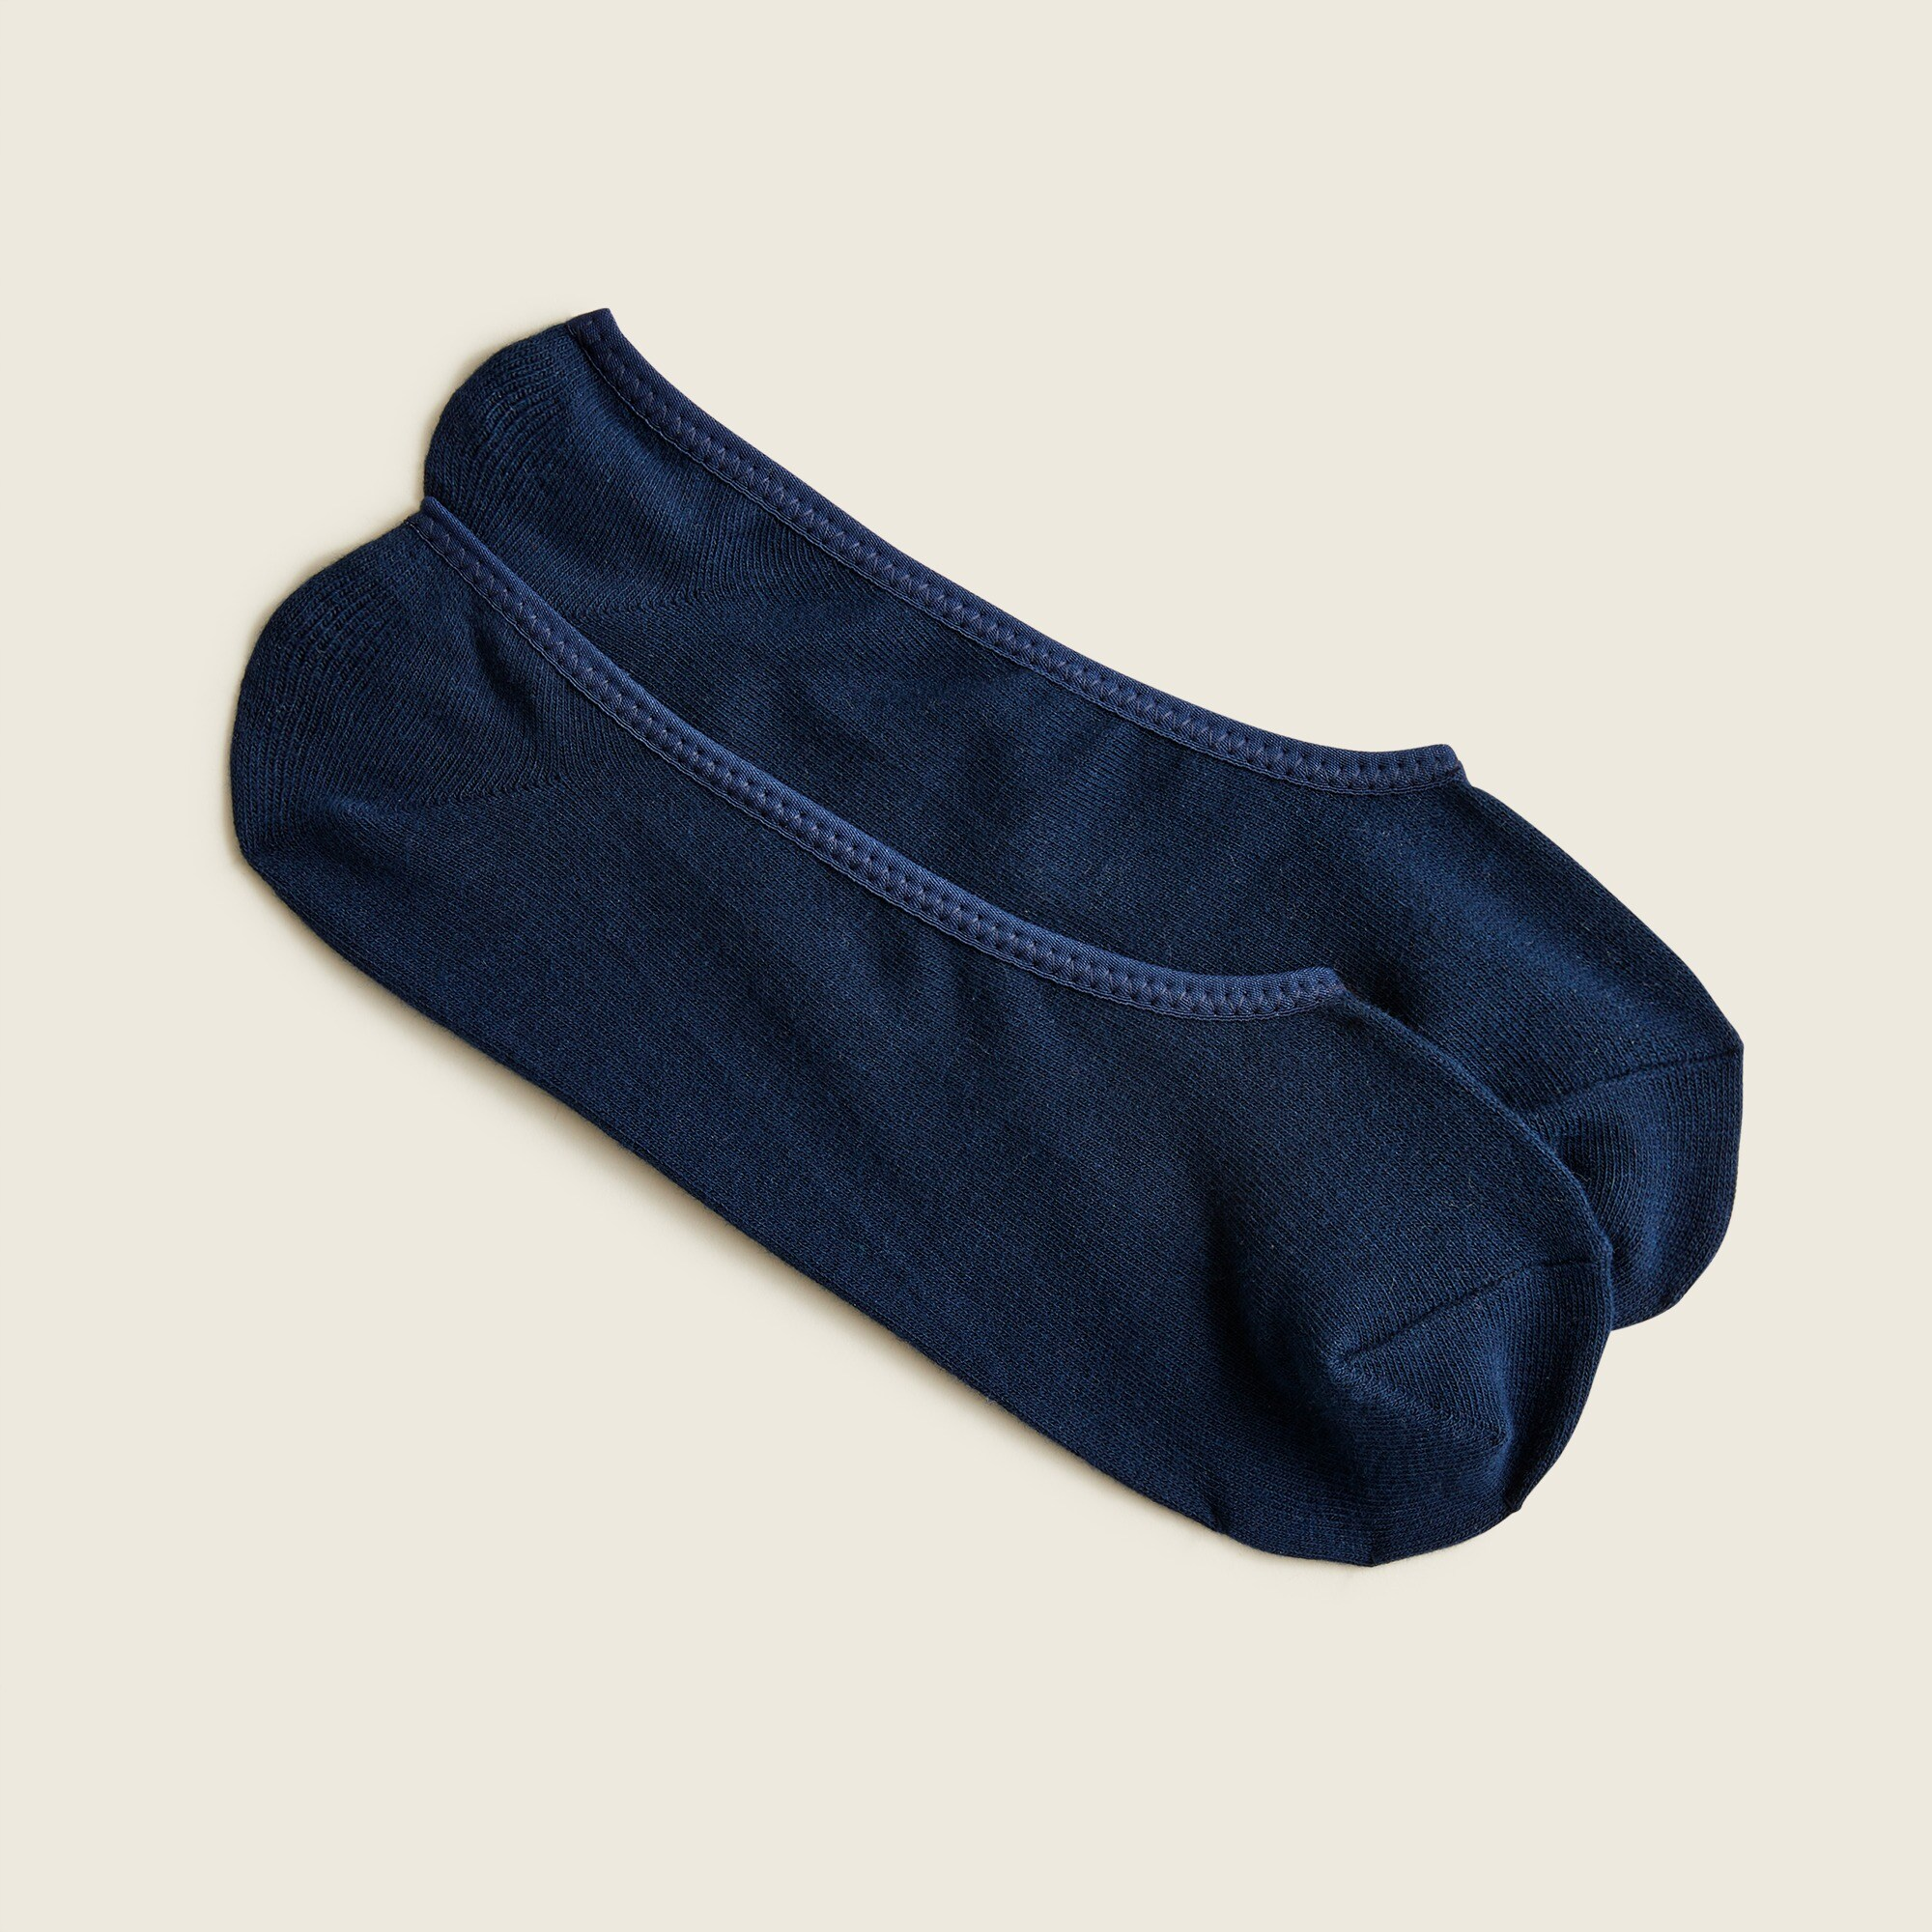 mens Performance no-show socks